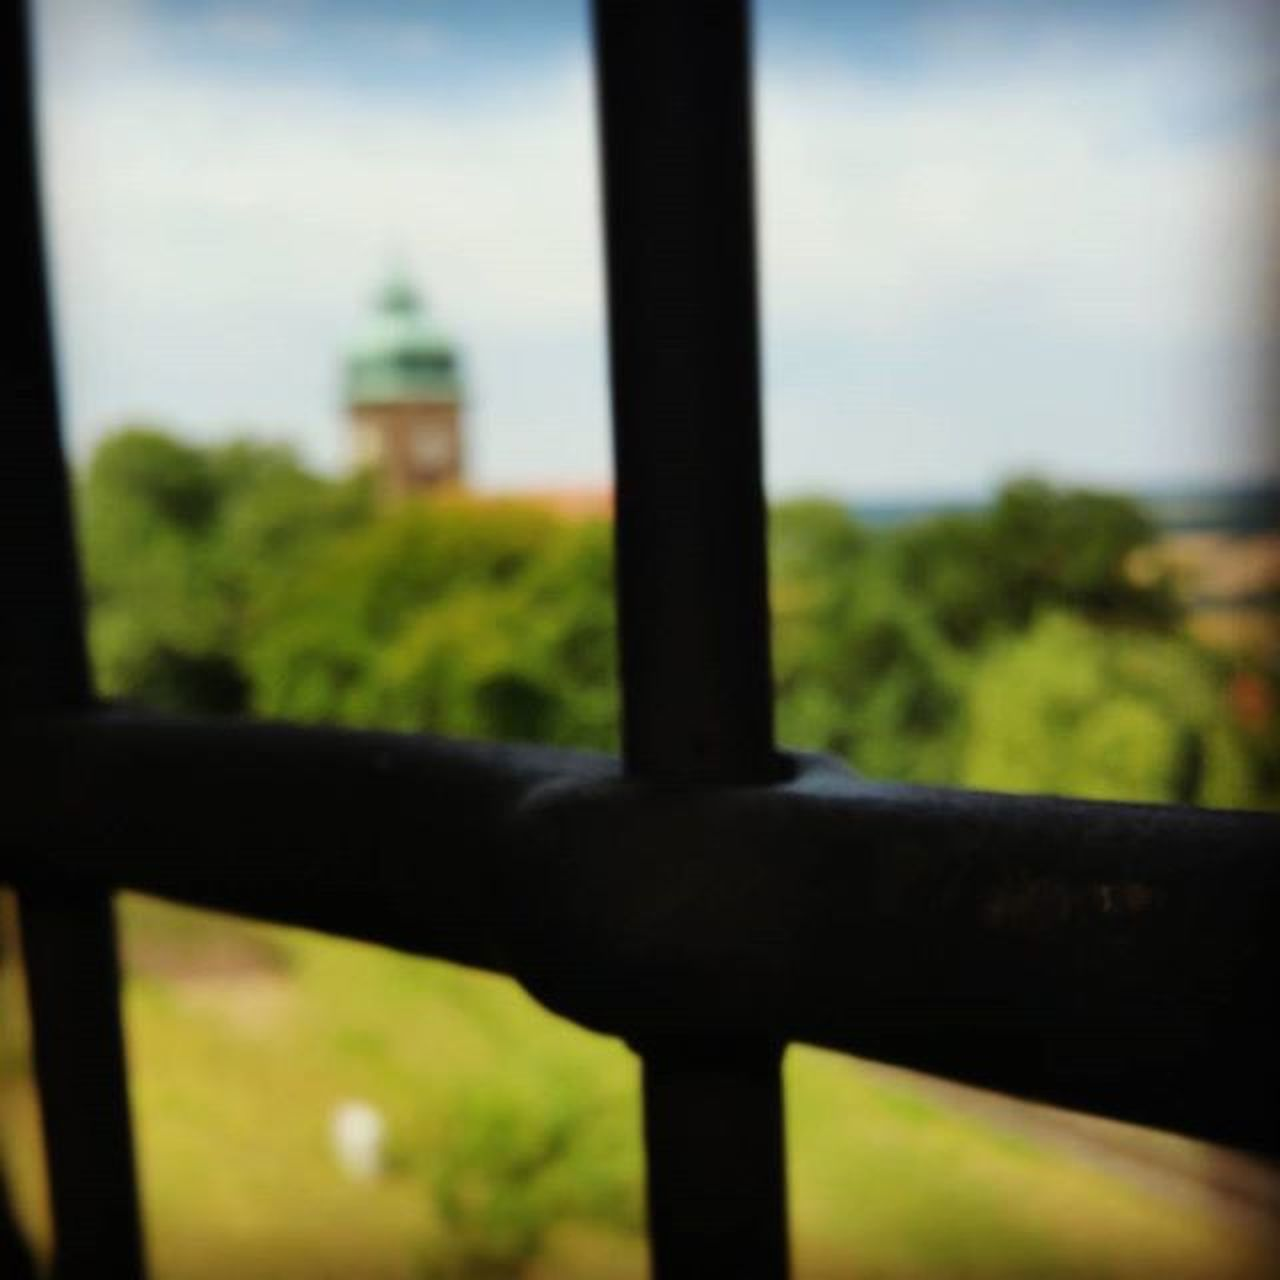 gate, focus on foreground, prison, no people, day, sky, outdoors, close-up